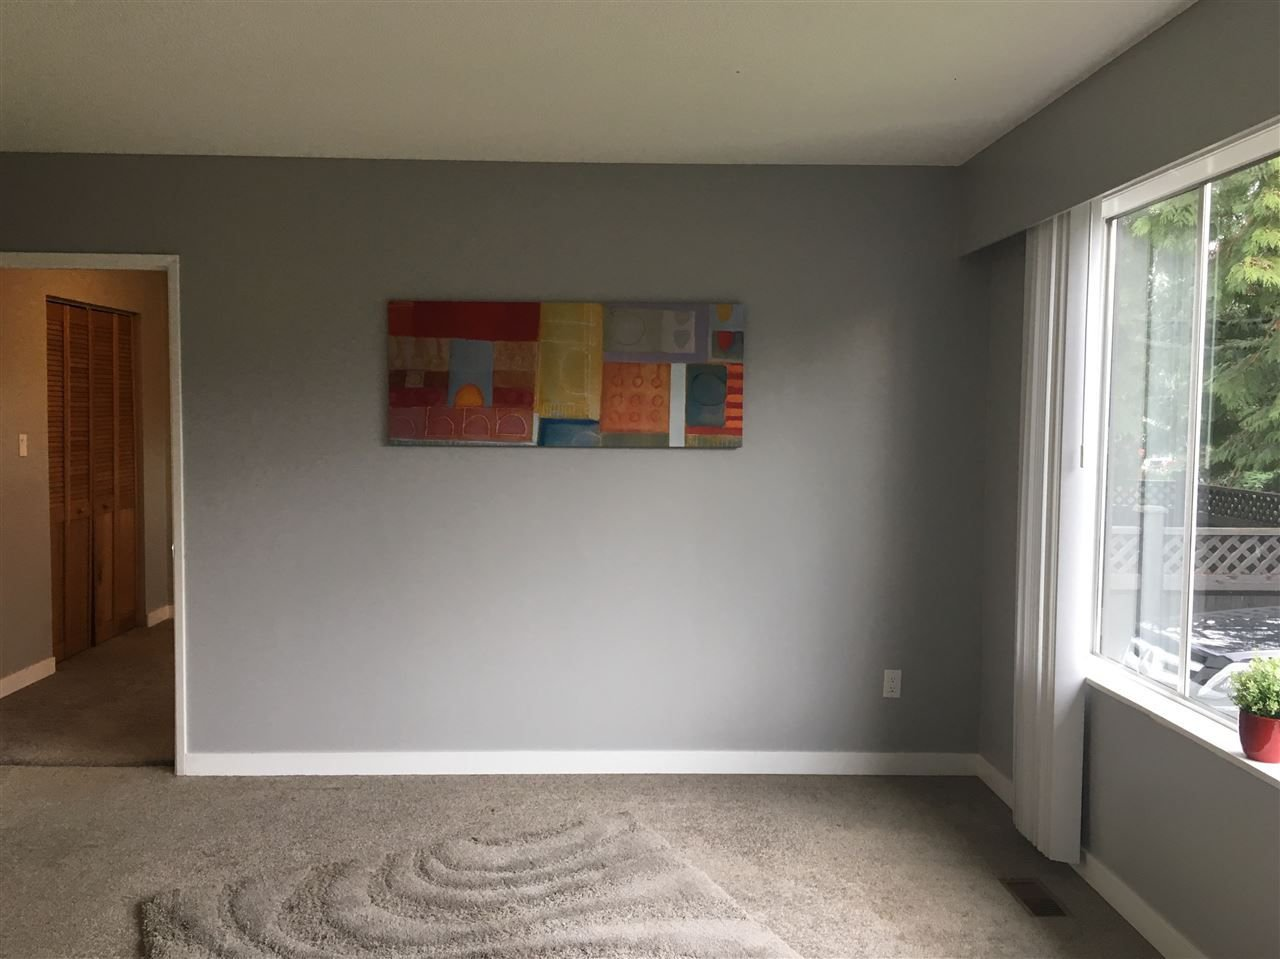 """Photo 18: Photos: 1673 GREENMOUNT Avenue in Port Coquitlam: Oxford Heights 1/2 Duplex for sale in """"OXFORD HEIGHTS"""" : MLS®# R2221936"""